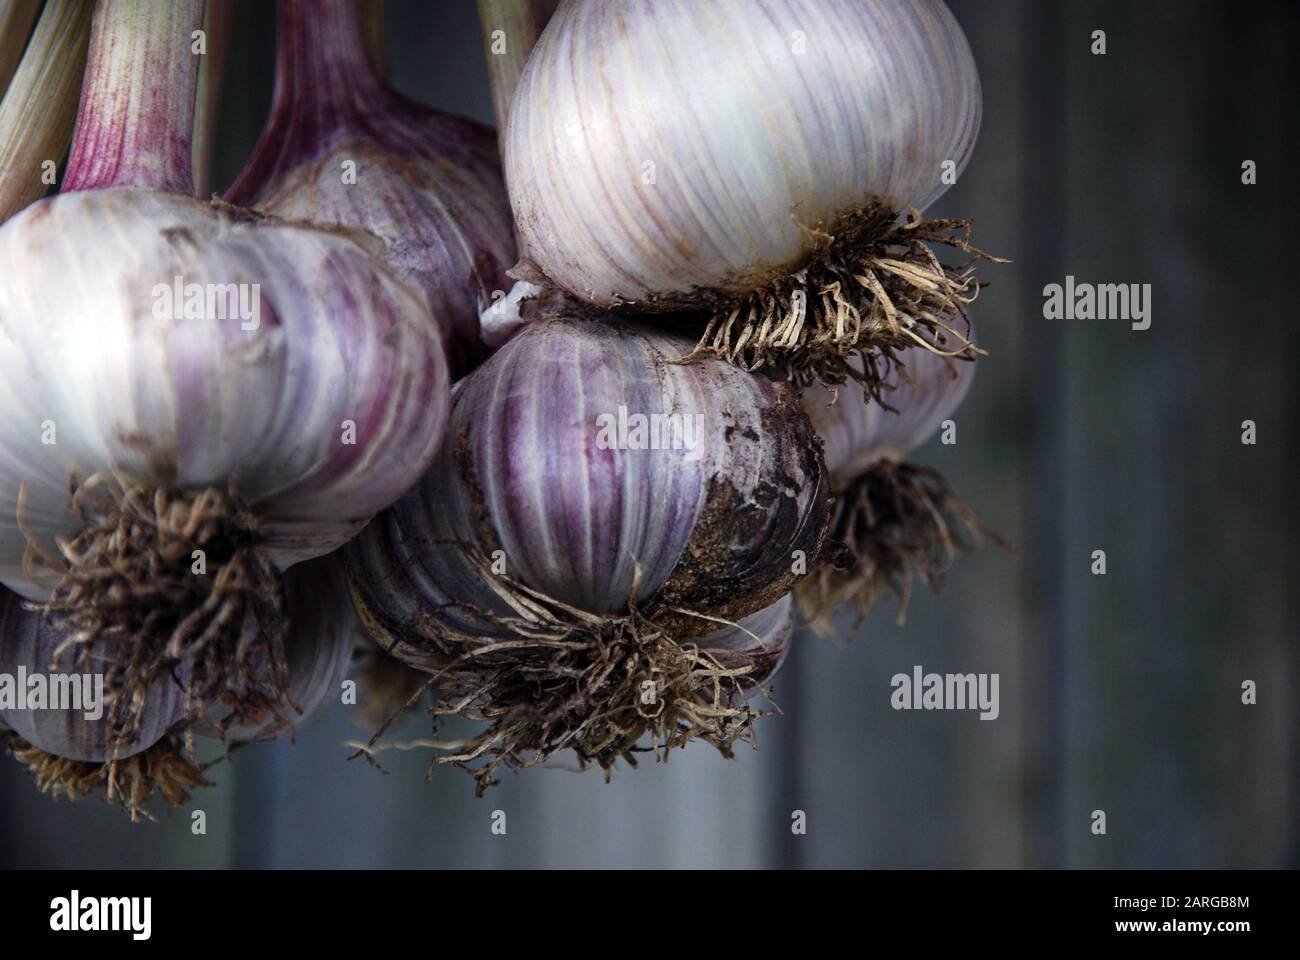 Bunch of freshly picked garlic hanging against gray wooden wall background, selective focus, close-up Stock Photo